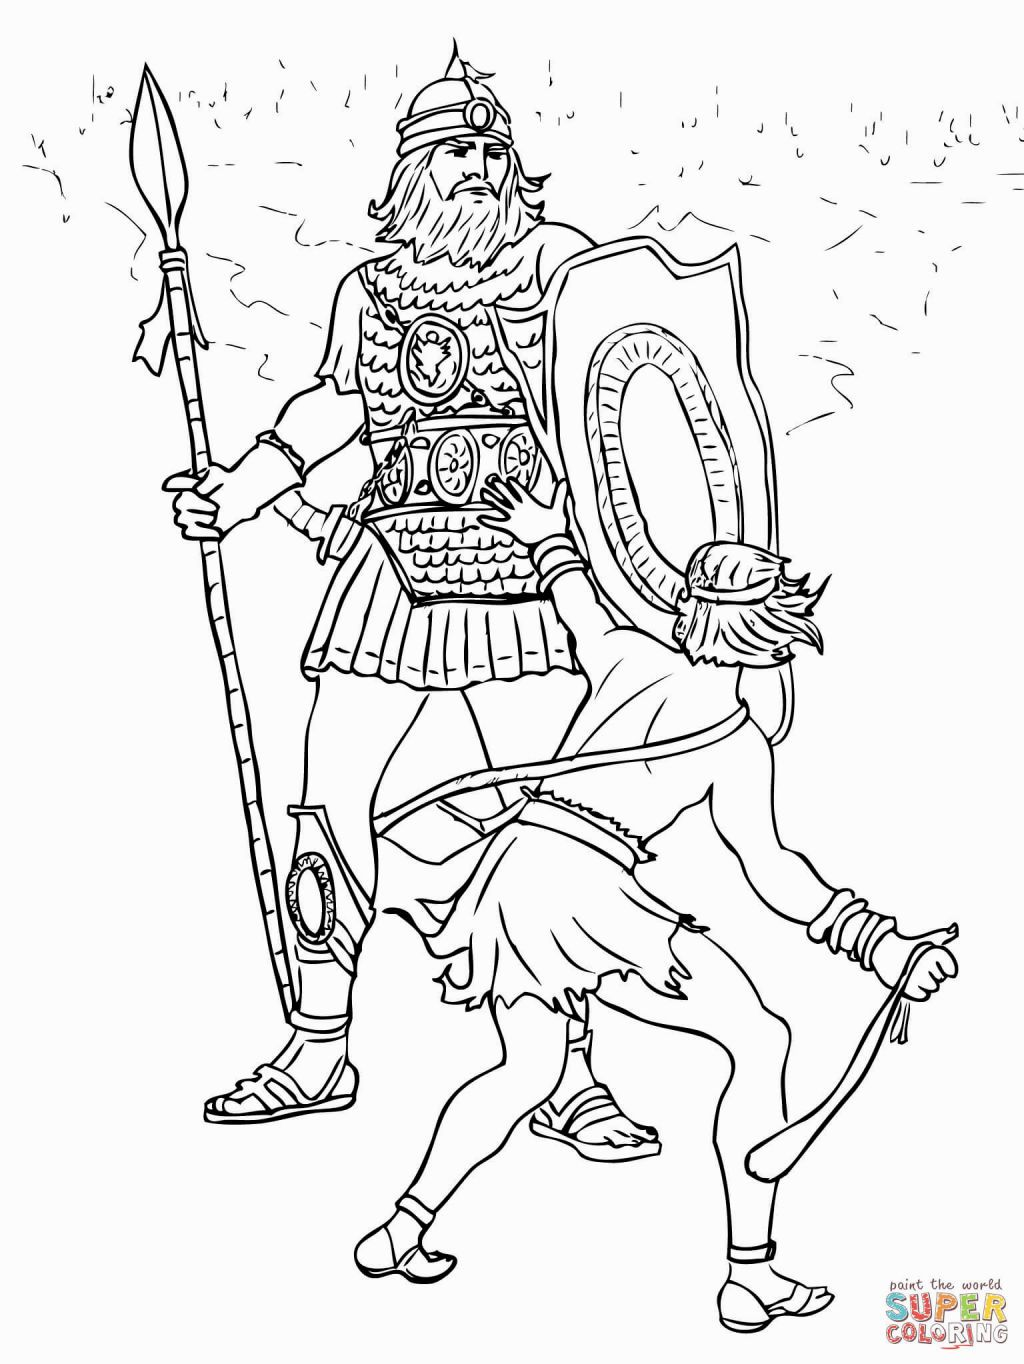 No David Coloring Page | Coloring Pages | Pinterest